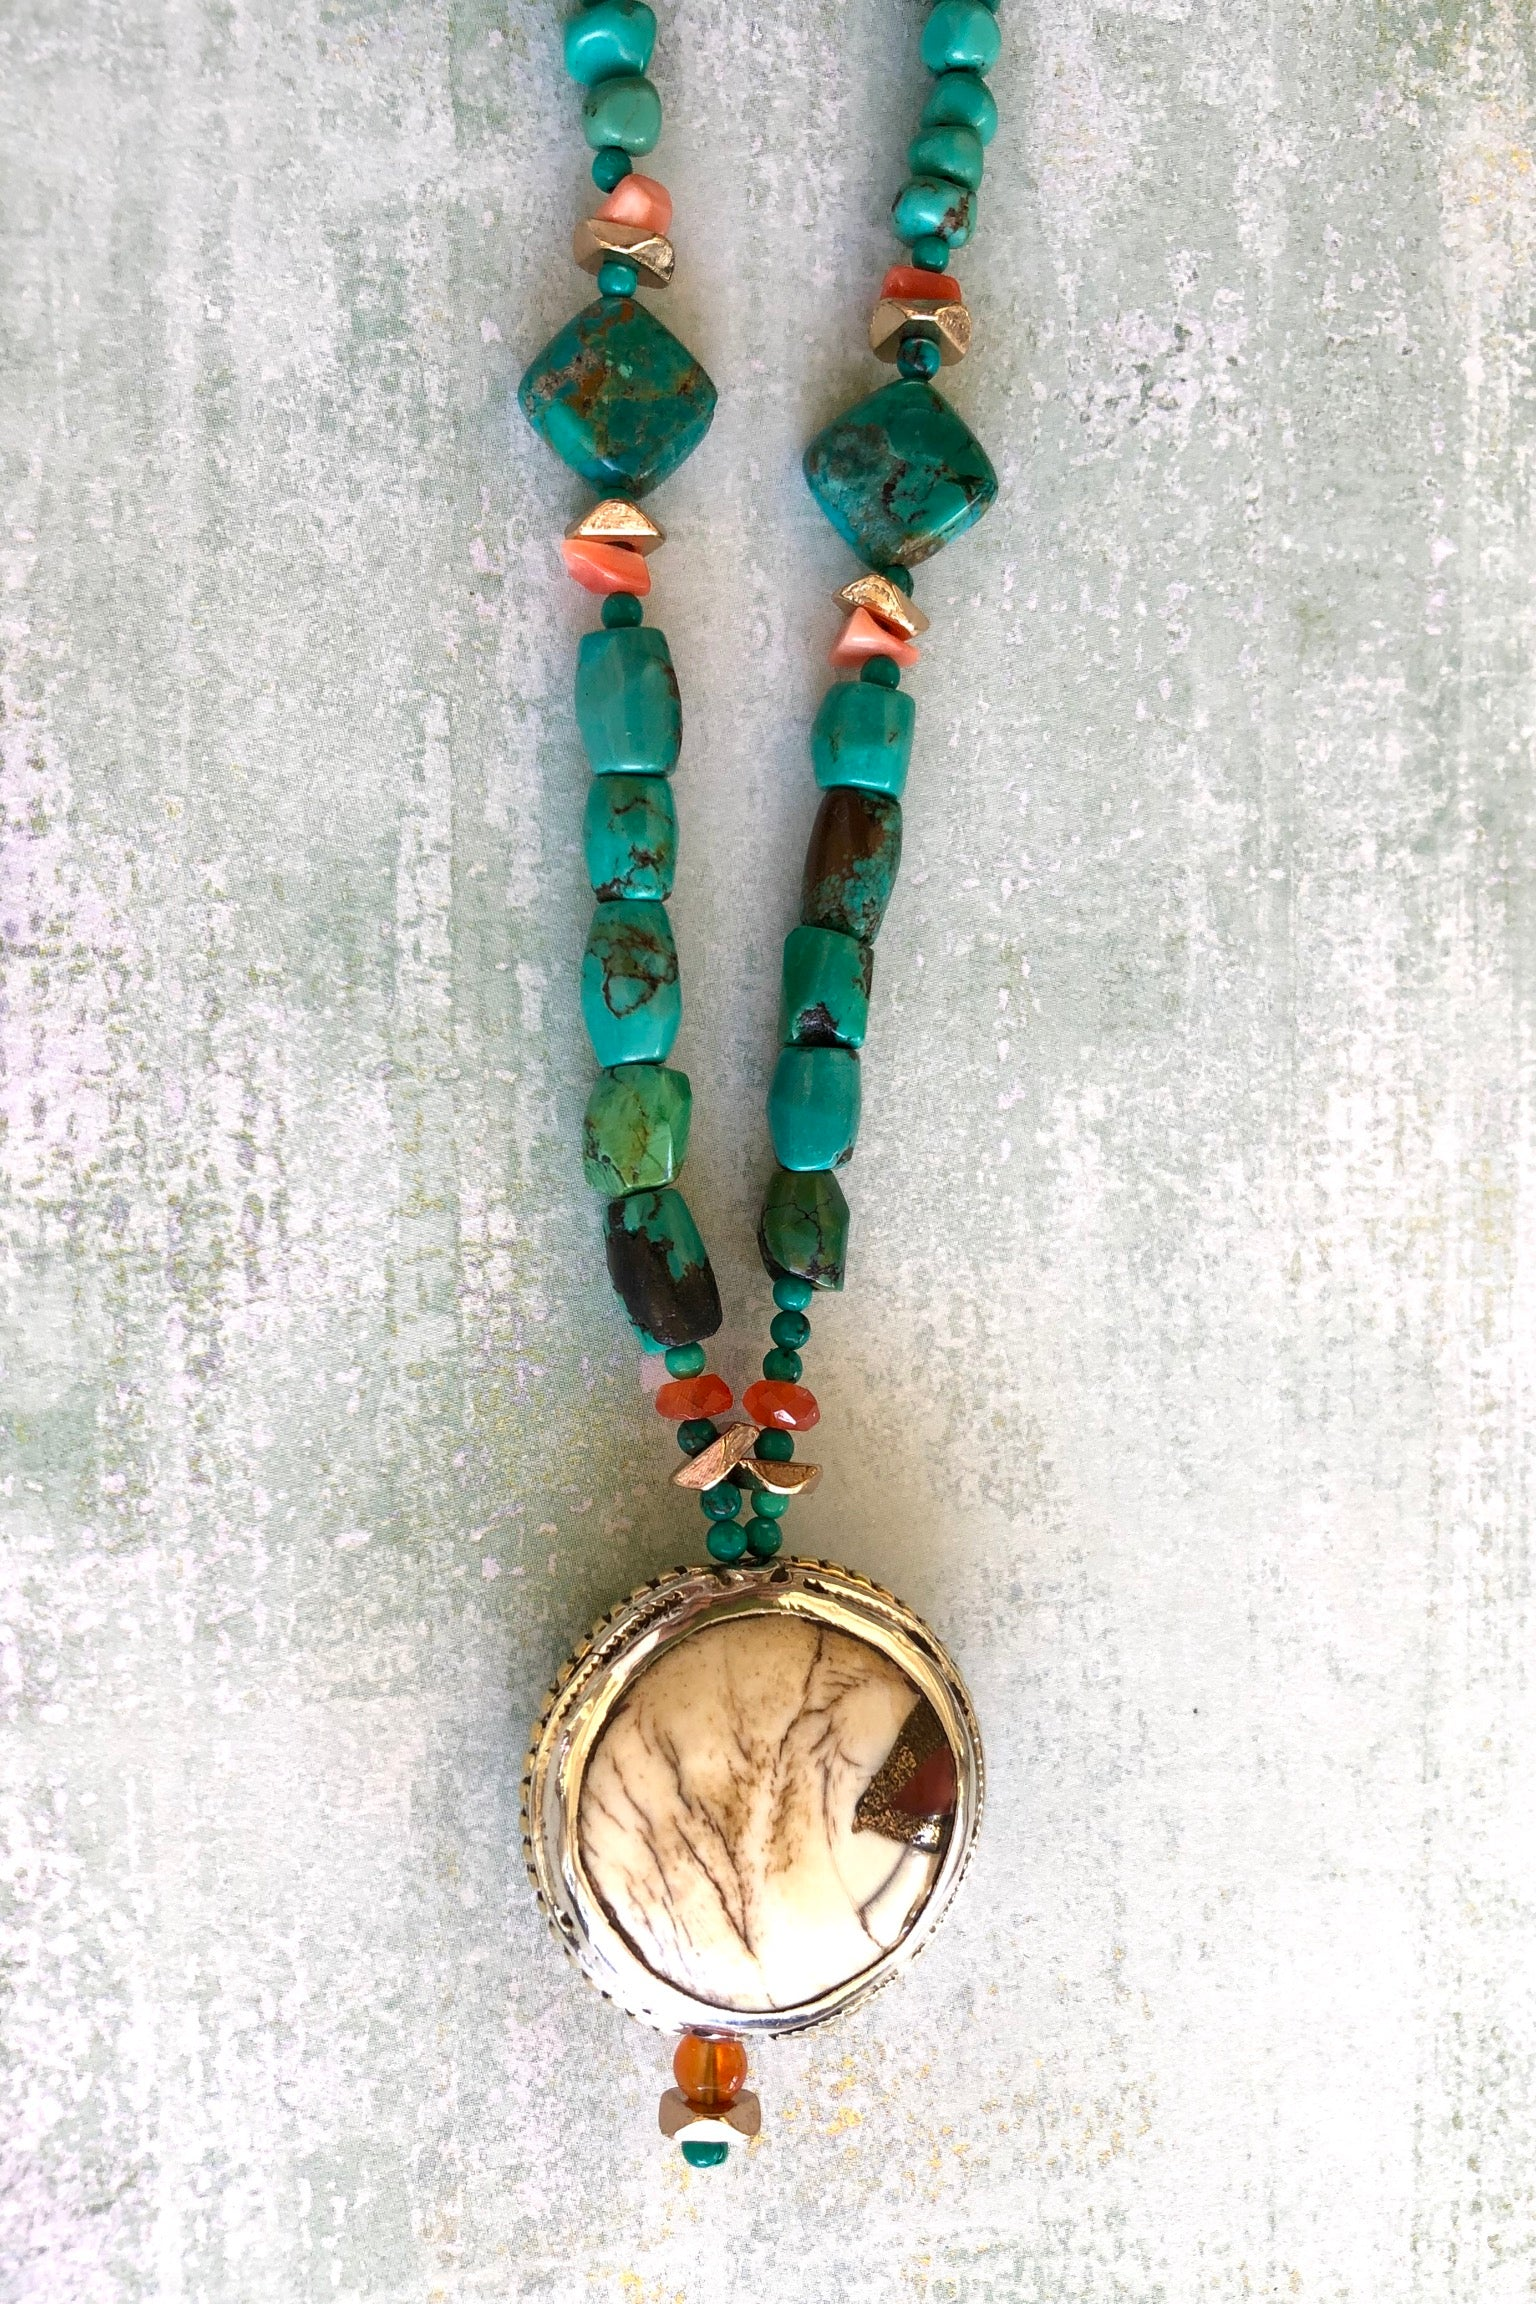 The centre piece is an inlaid Naga conch shell bead from Tibet. The beads are all genuine natural Turquoise, very irregular and some are very old.